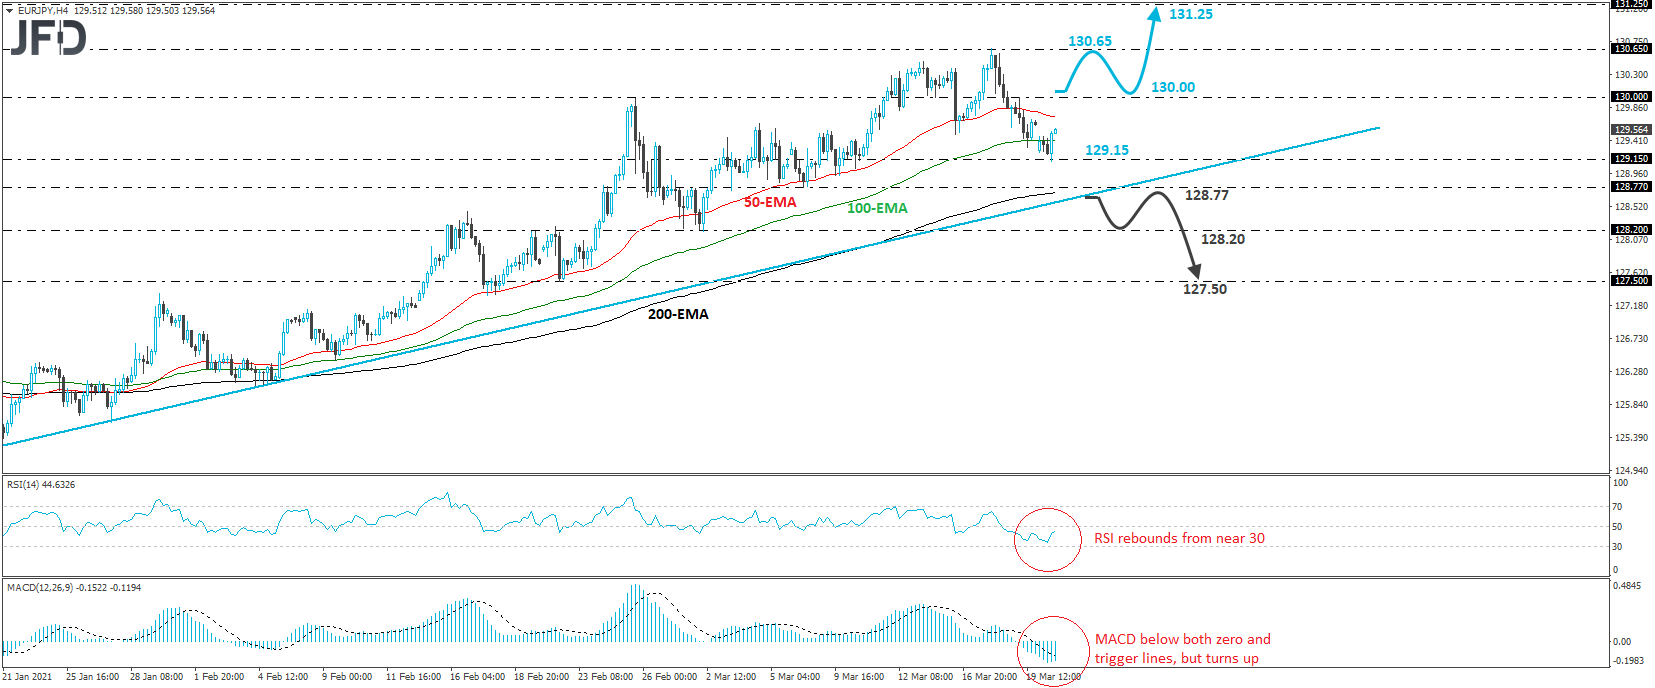 EUR/JPY 4-hour chart technical analysis